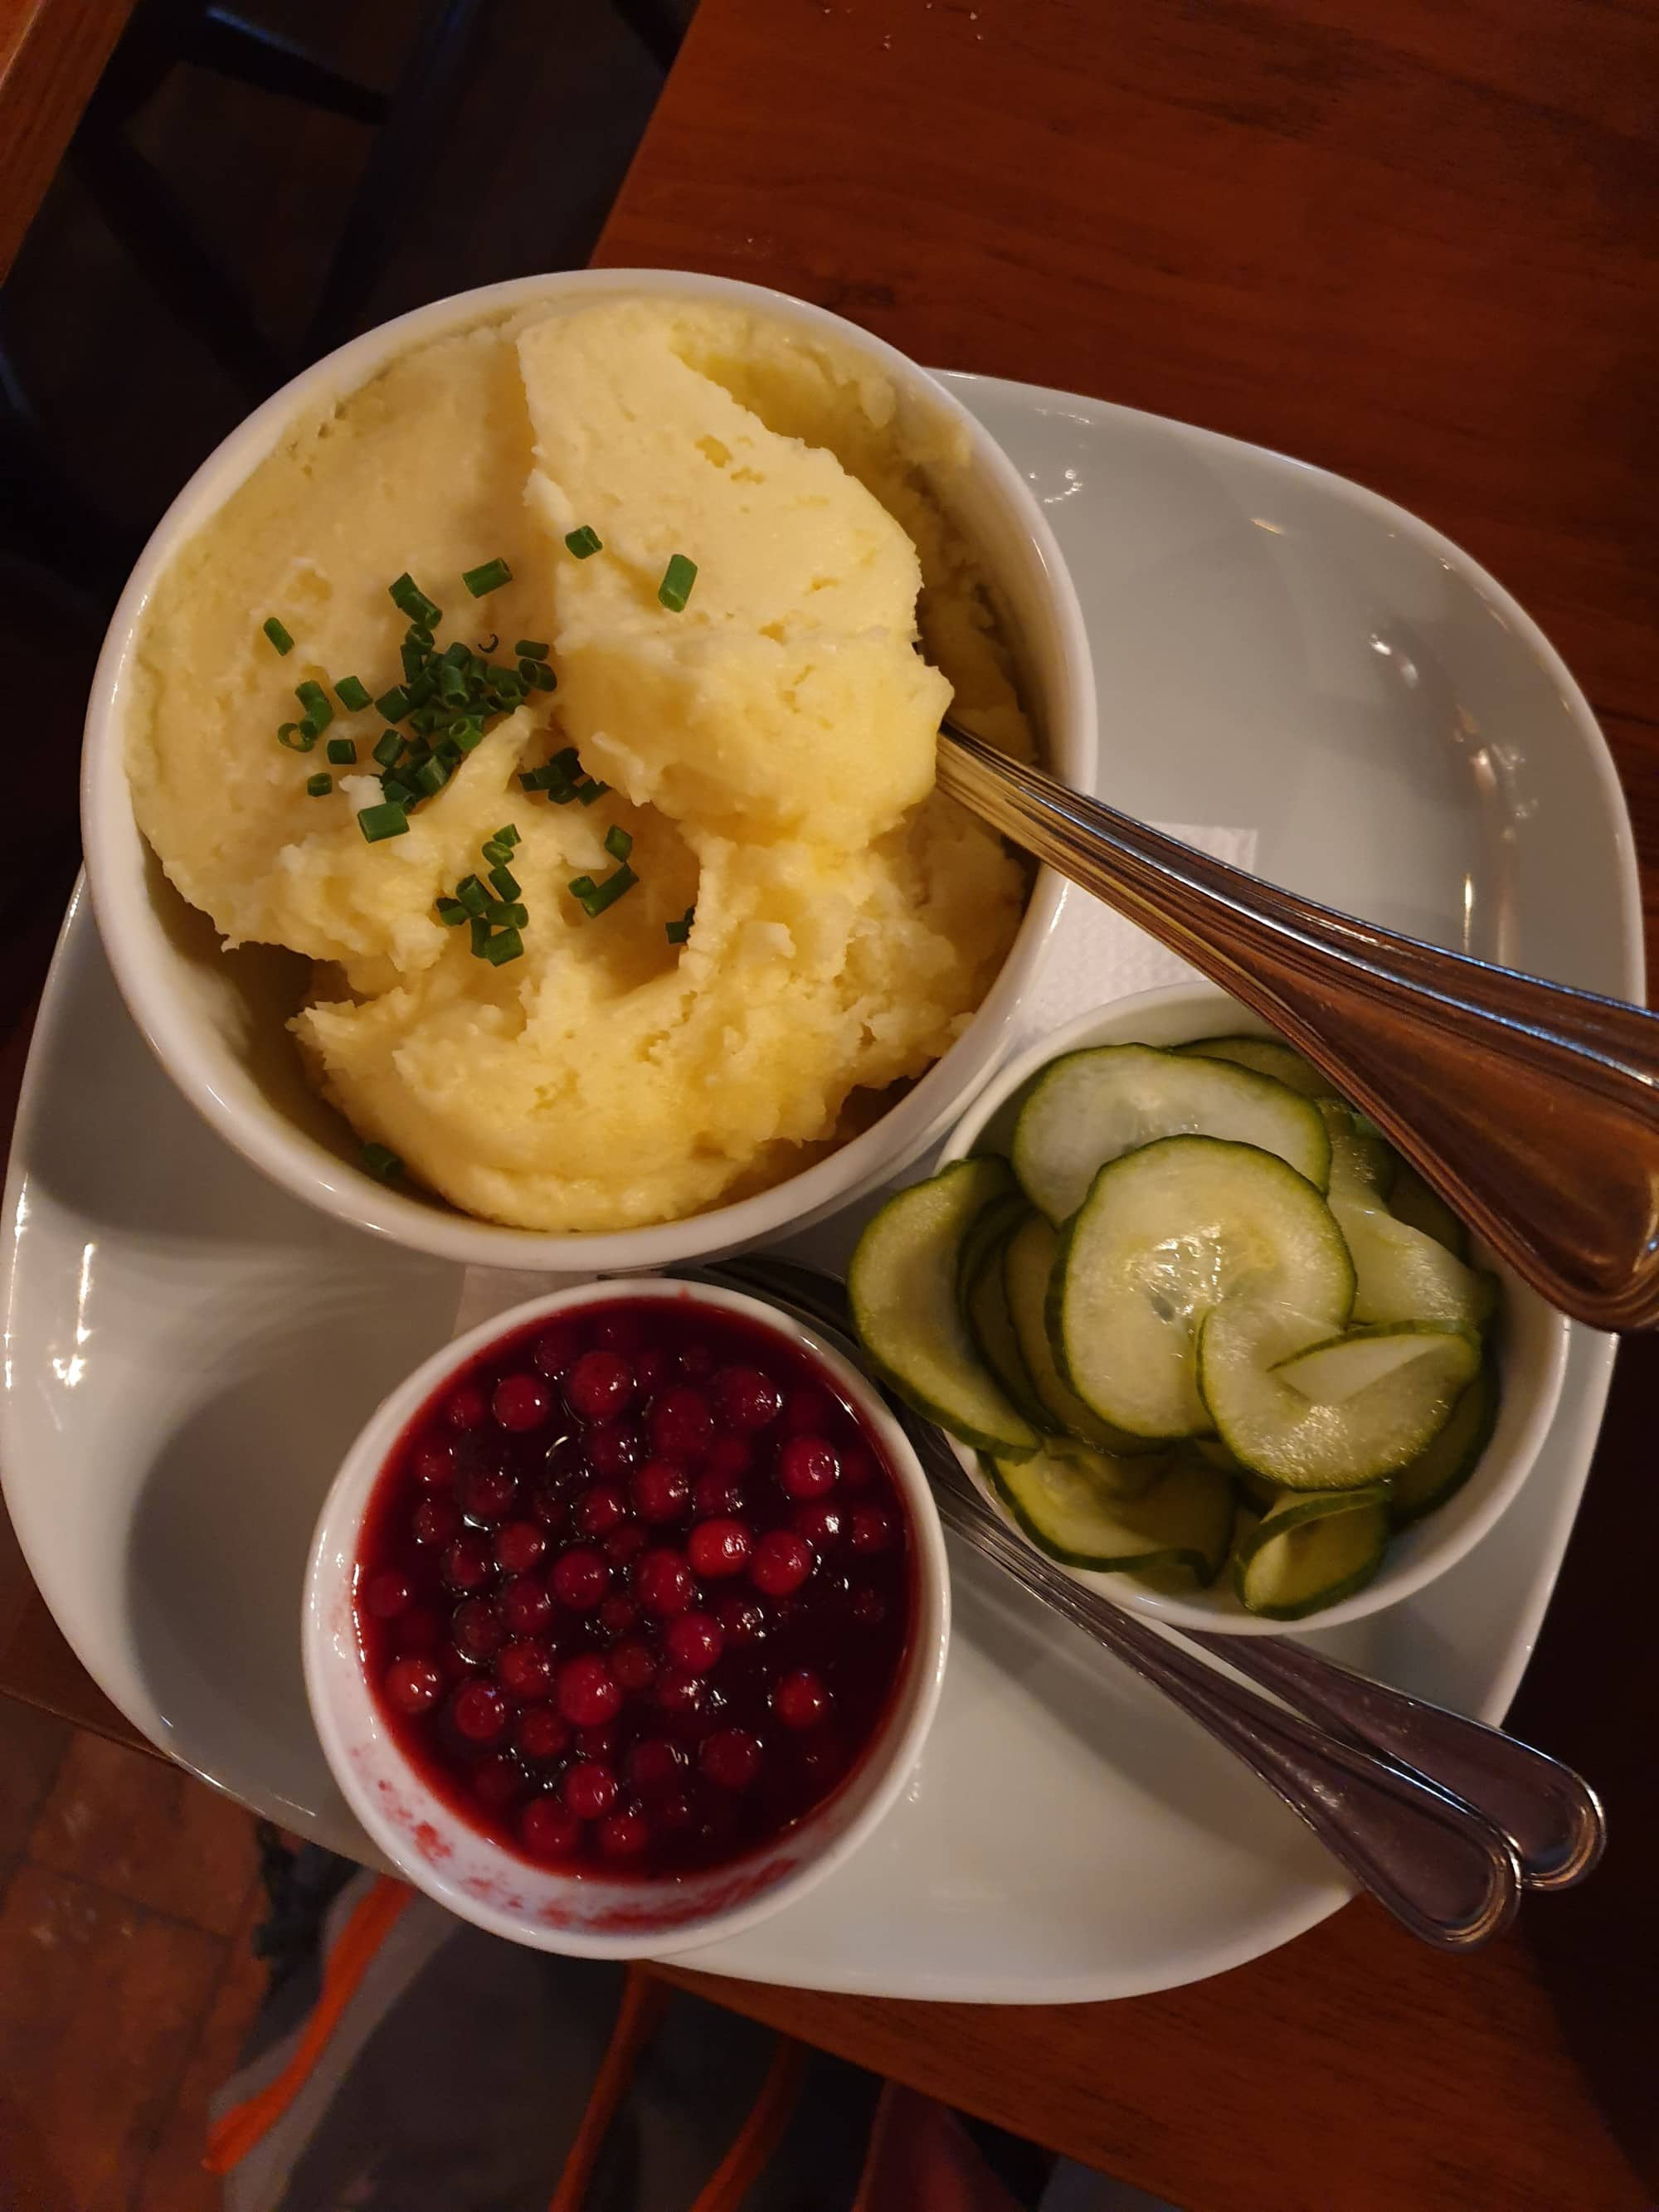 Mashed Potato Lingonberry Jam and Pickled Cucumber at Bullen Malmo